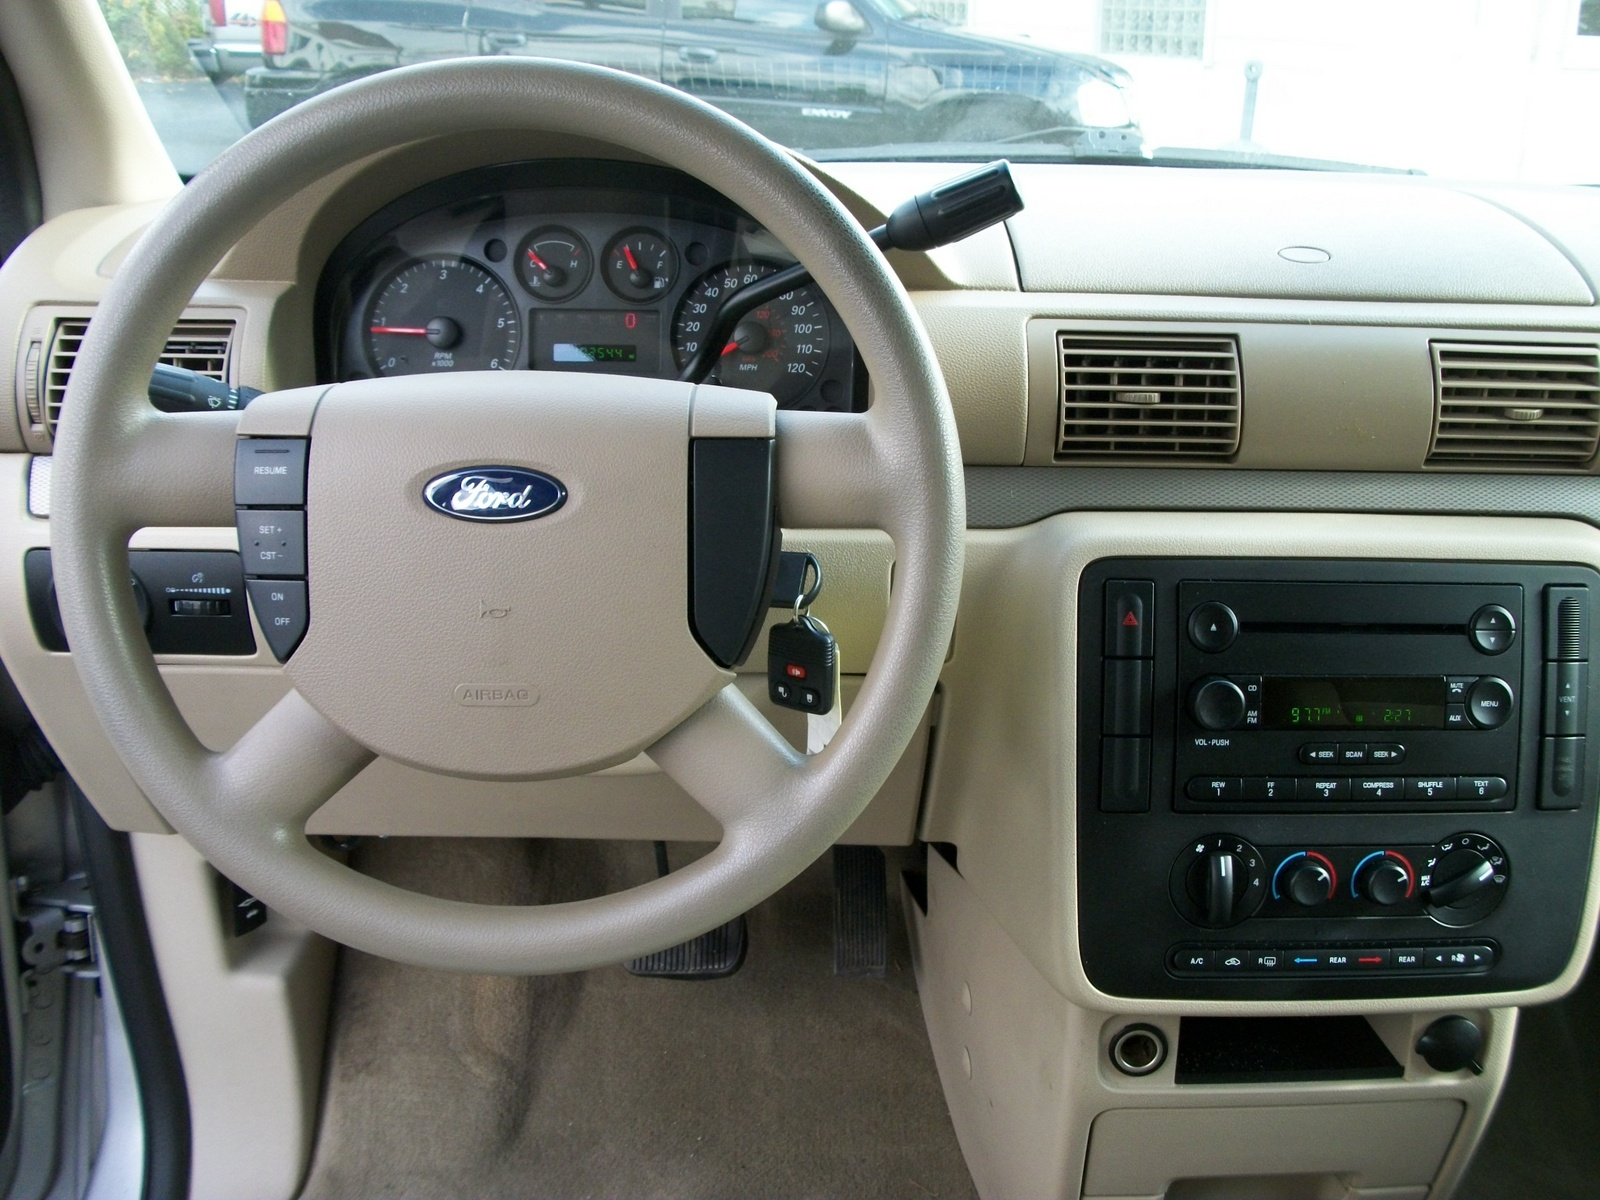 2005 Ford Freestar Image 3